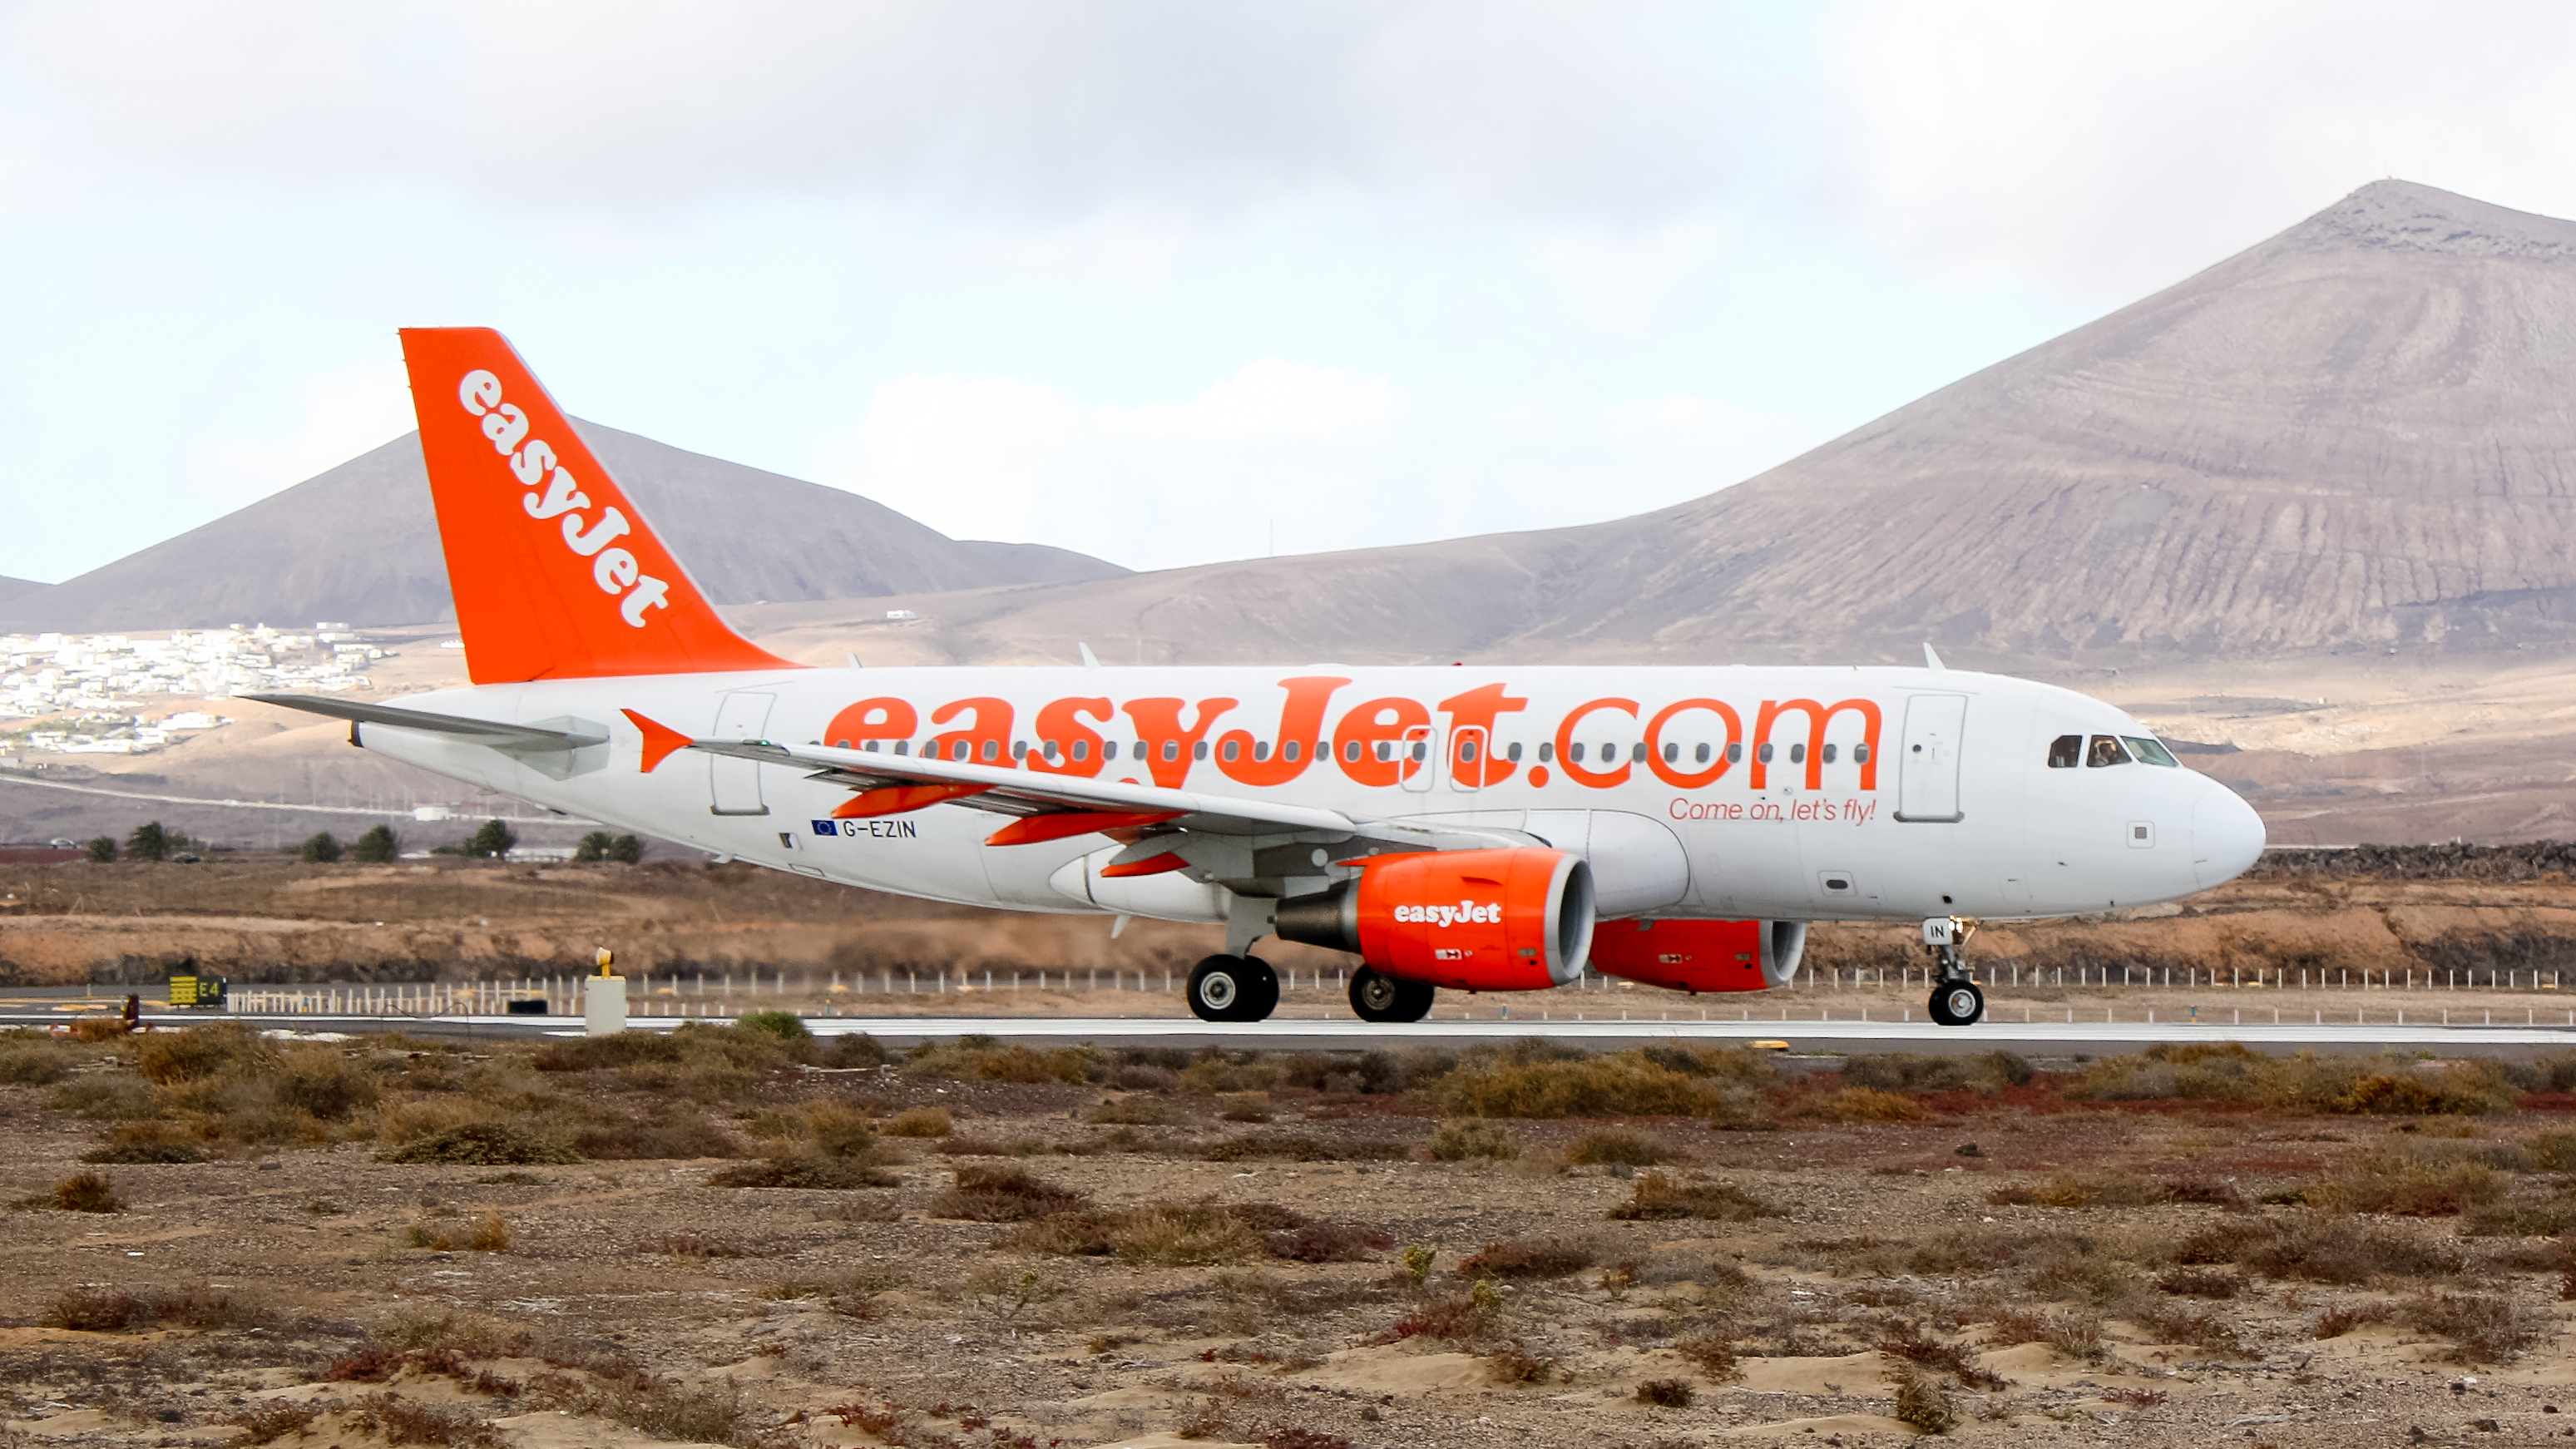 easyjet a319 - photo #2